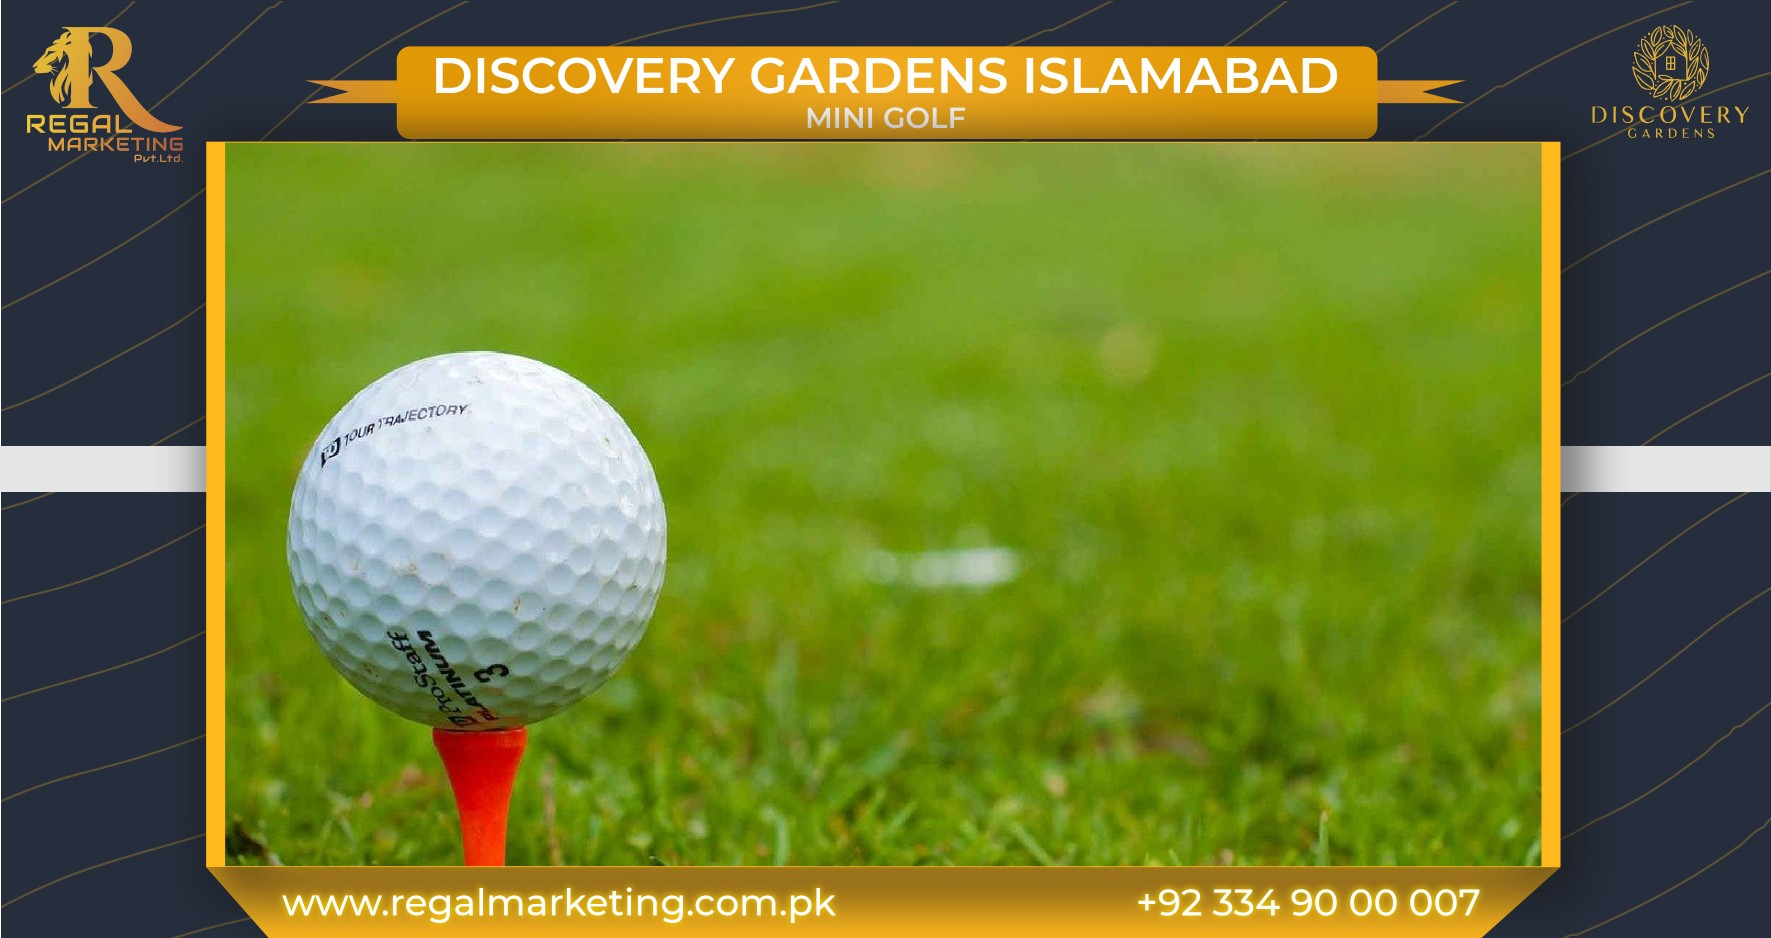 Mini Golf at Discovery Gardens Islamabad